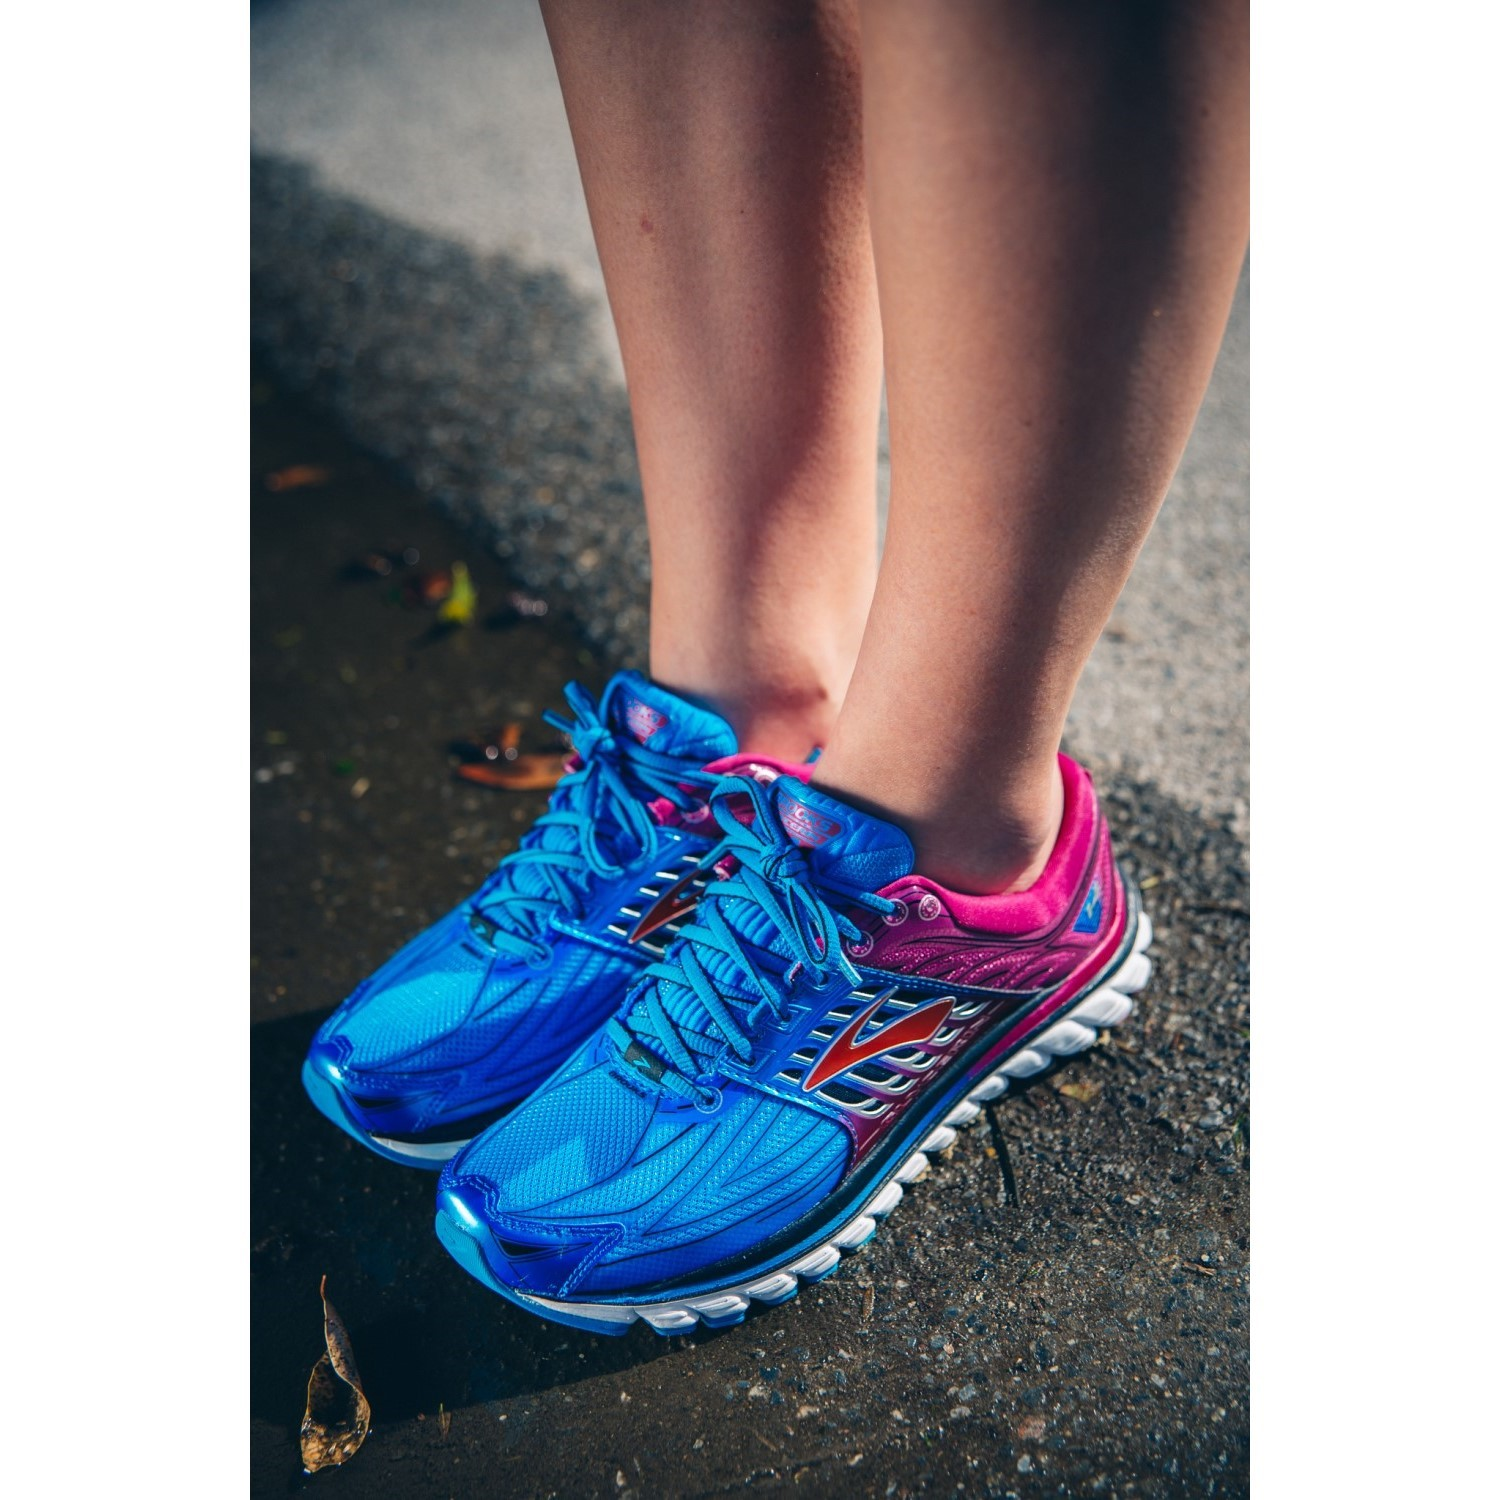 49c0bddd1fa09 Brooks Glycerin 14 - Womens Running Shoes - Dress Blue Fes Fuchsia Black